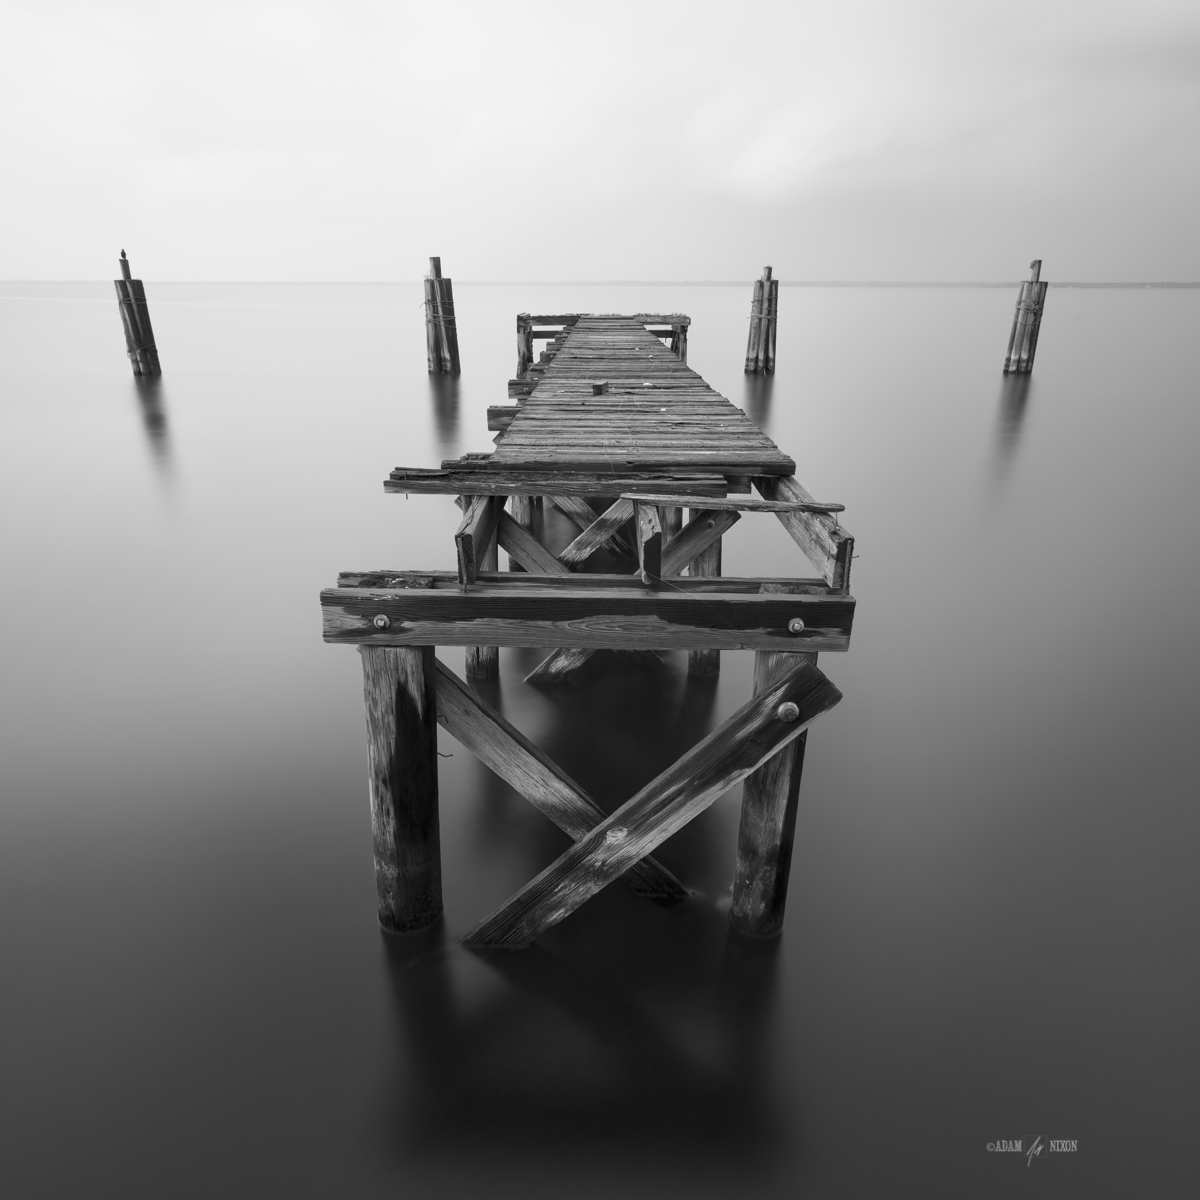 Lonely Dock Canon 5DIII, 16-35mm, 62sec @f/11, LEE Big Stopper